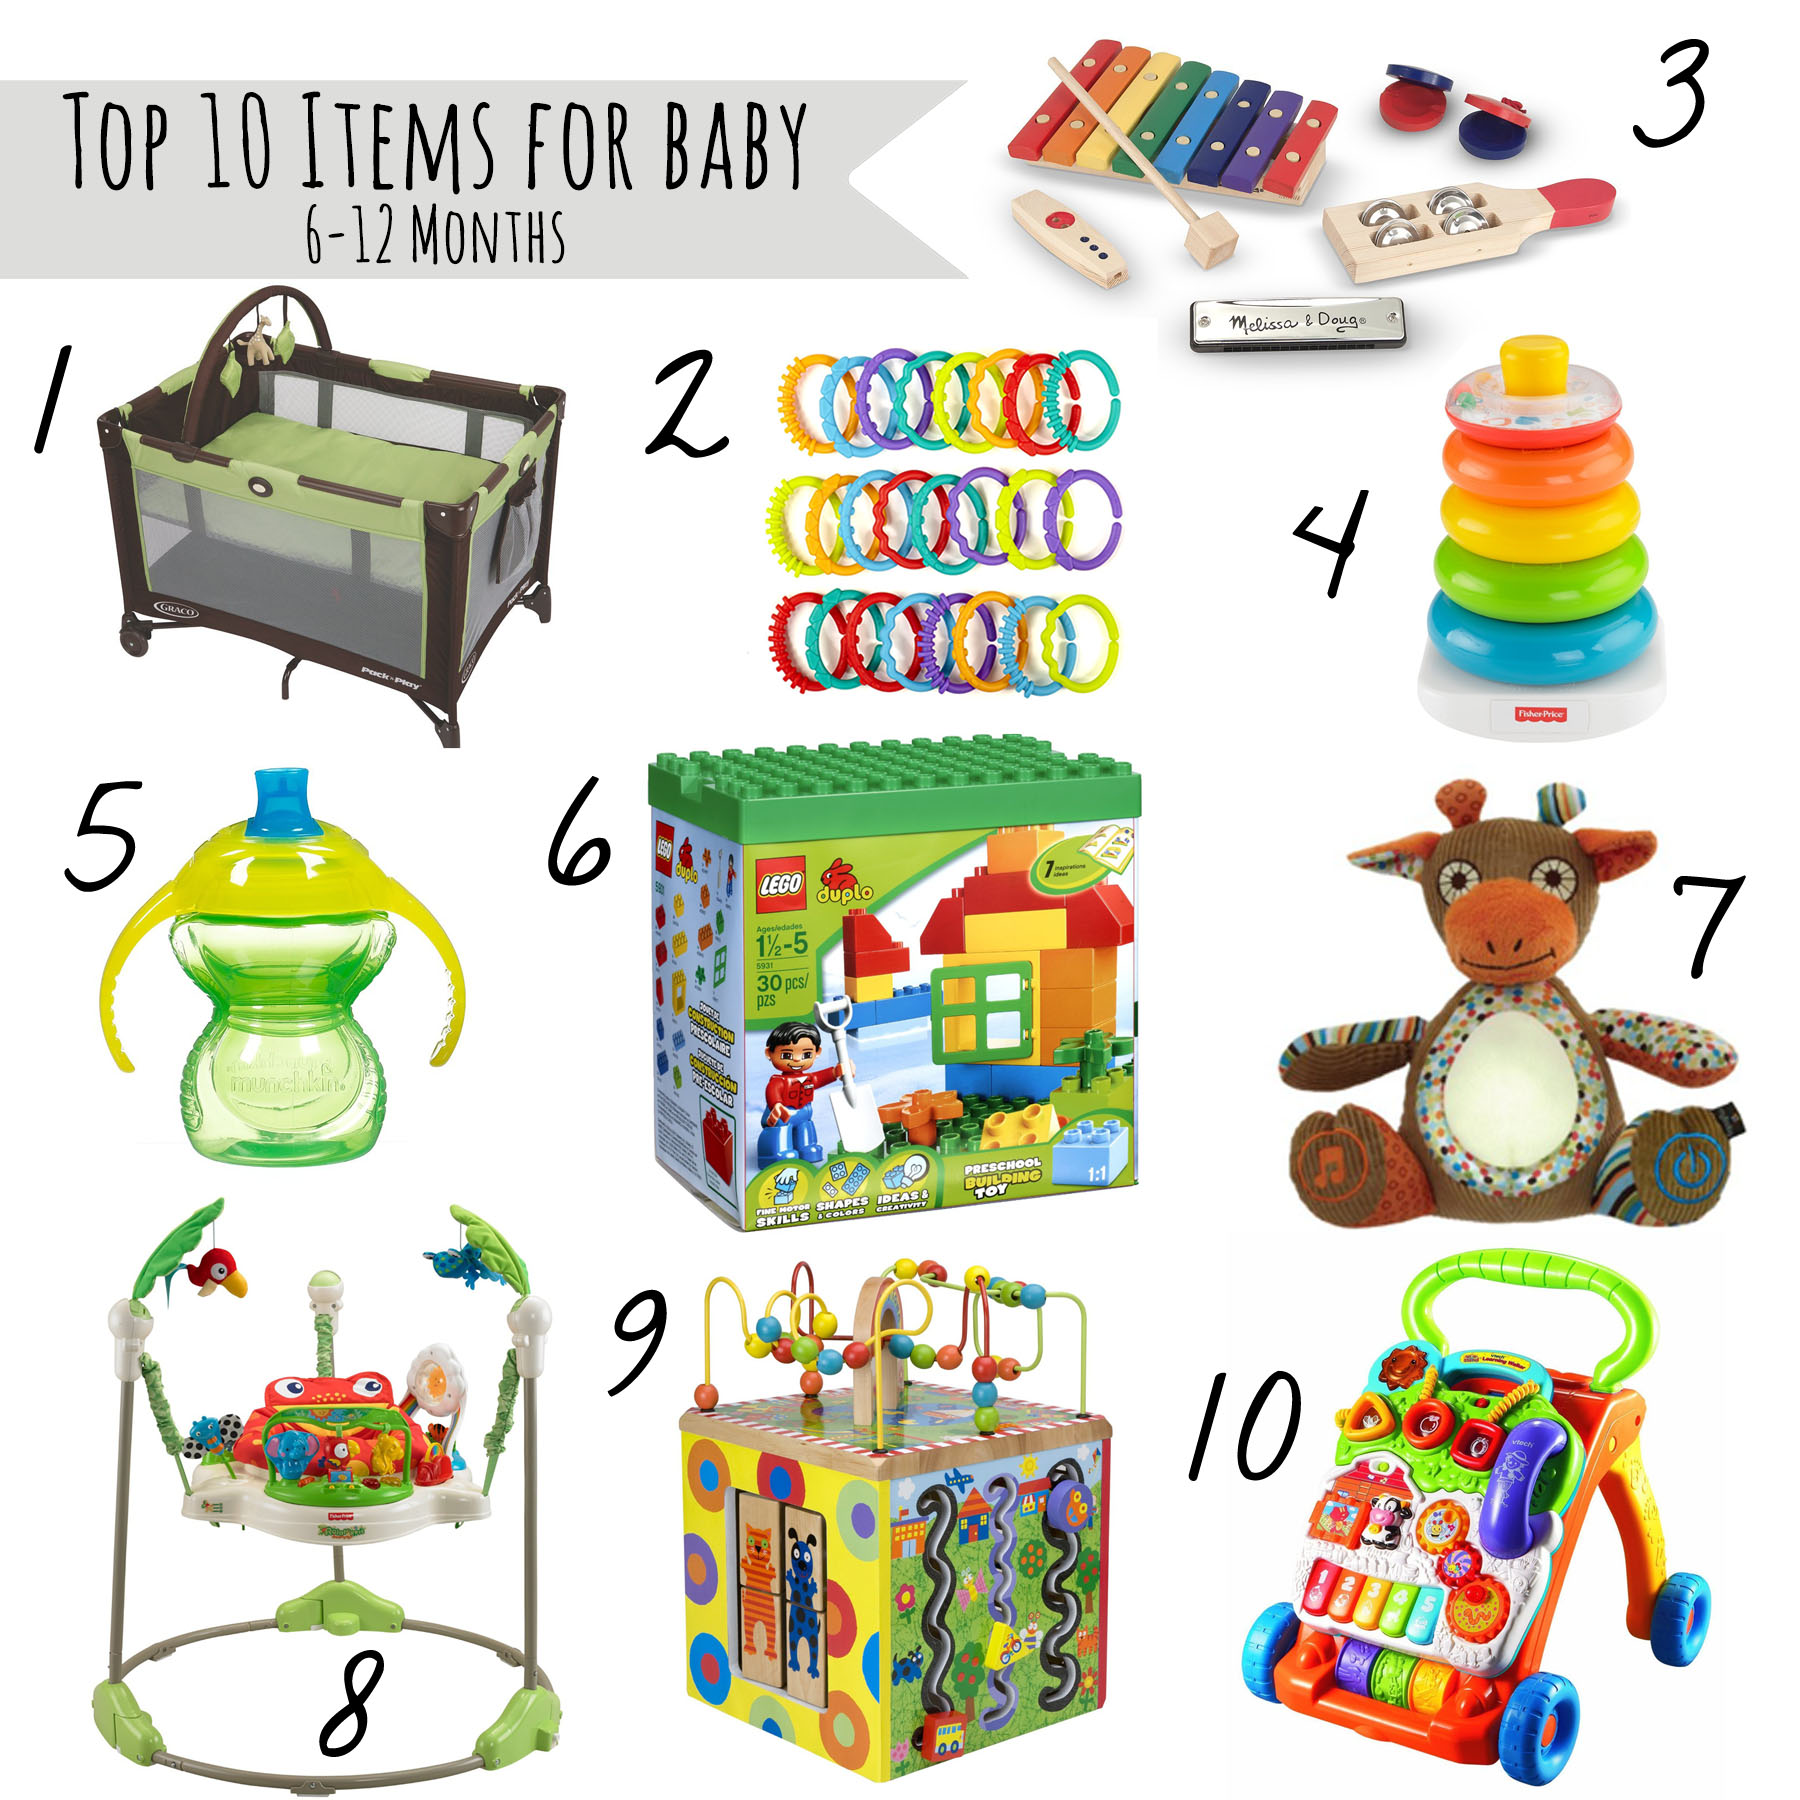 Toys For 10 Month Old : Top must haves for babies month old our